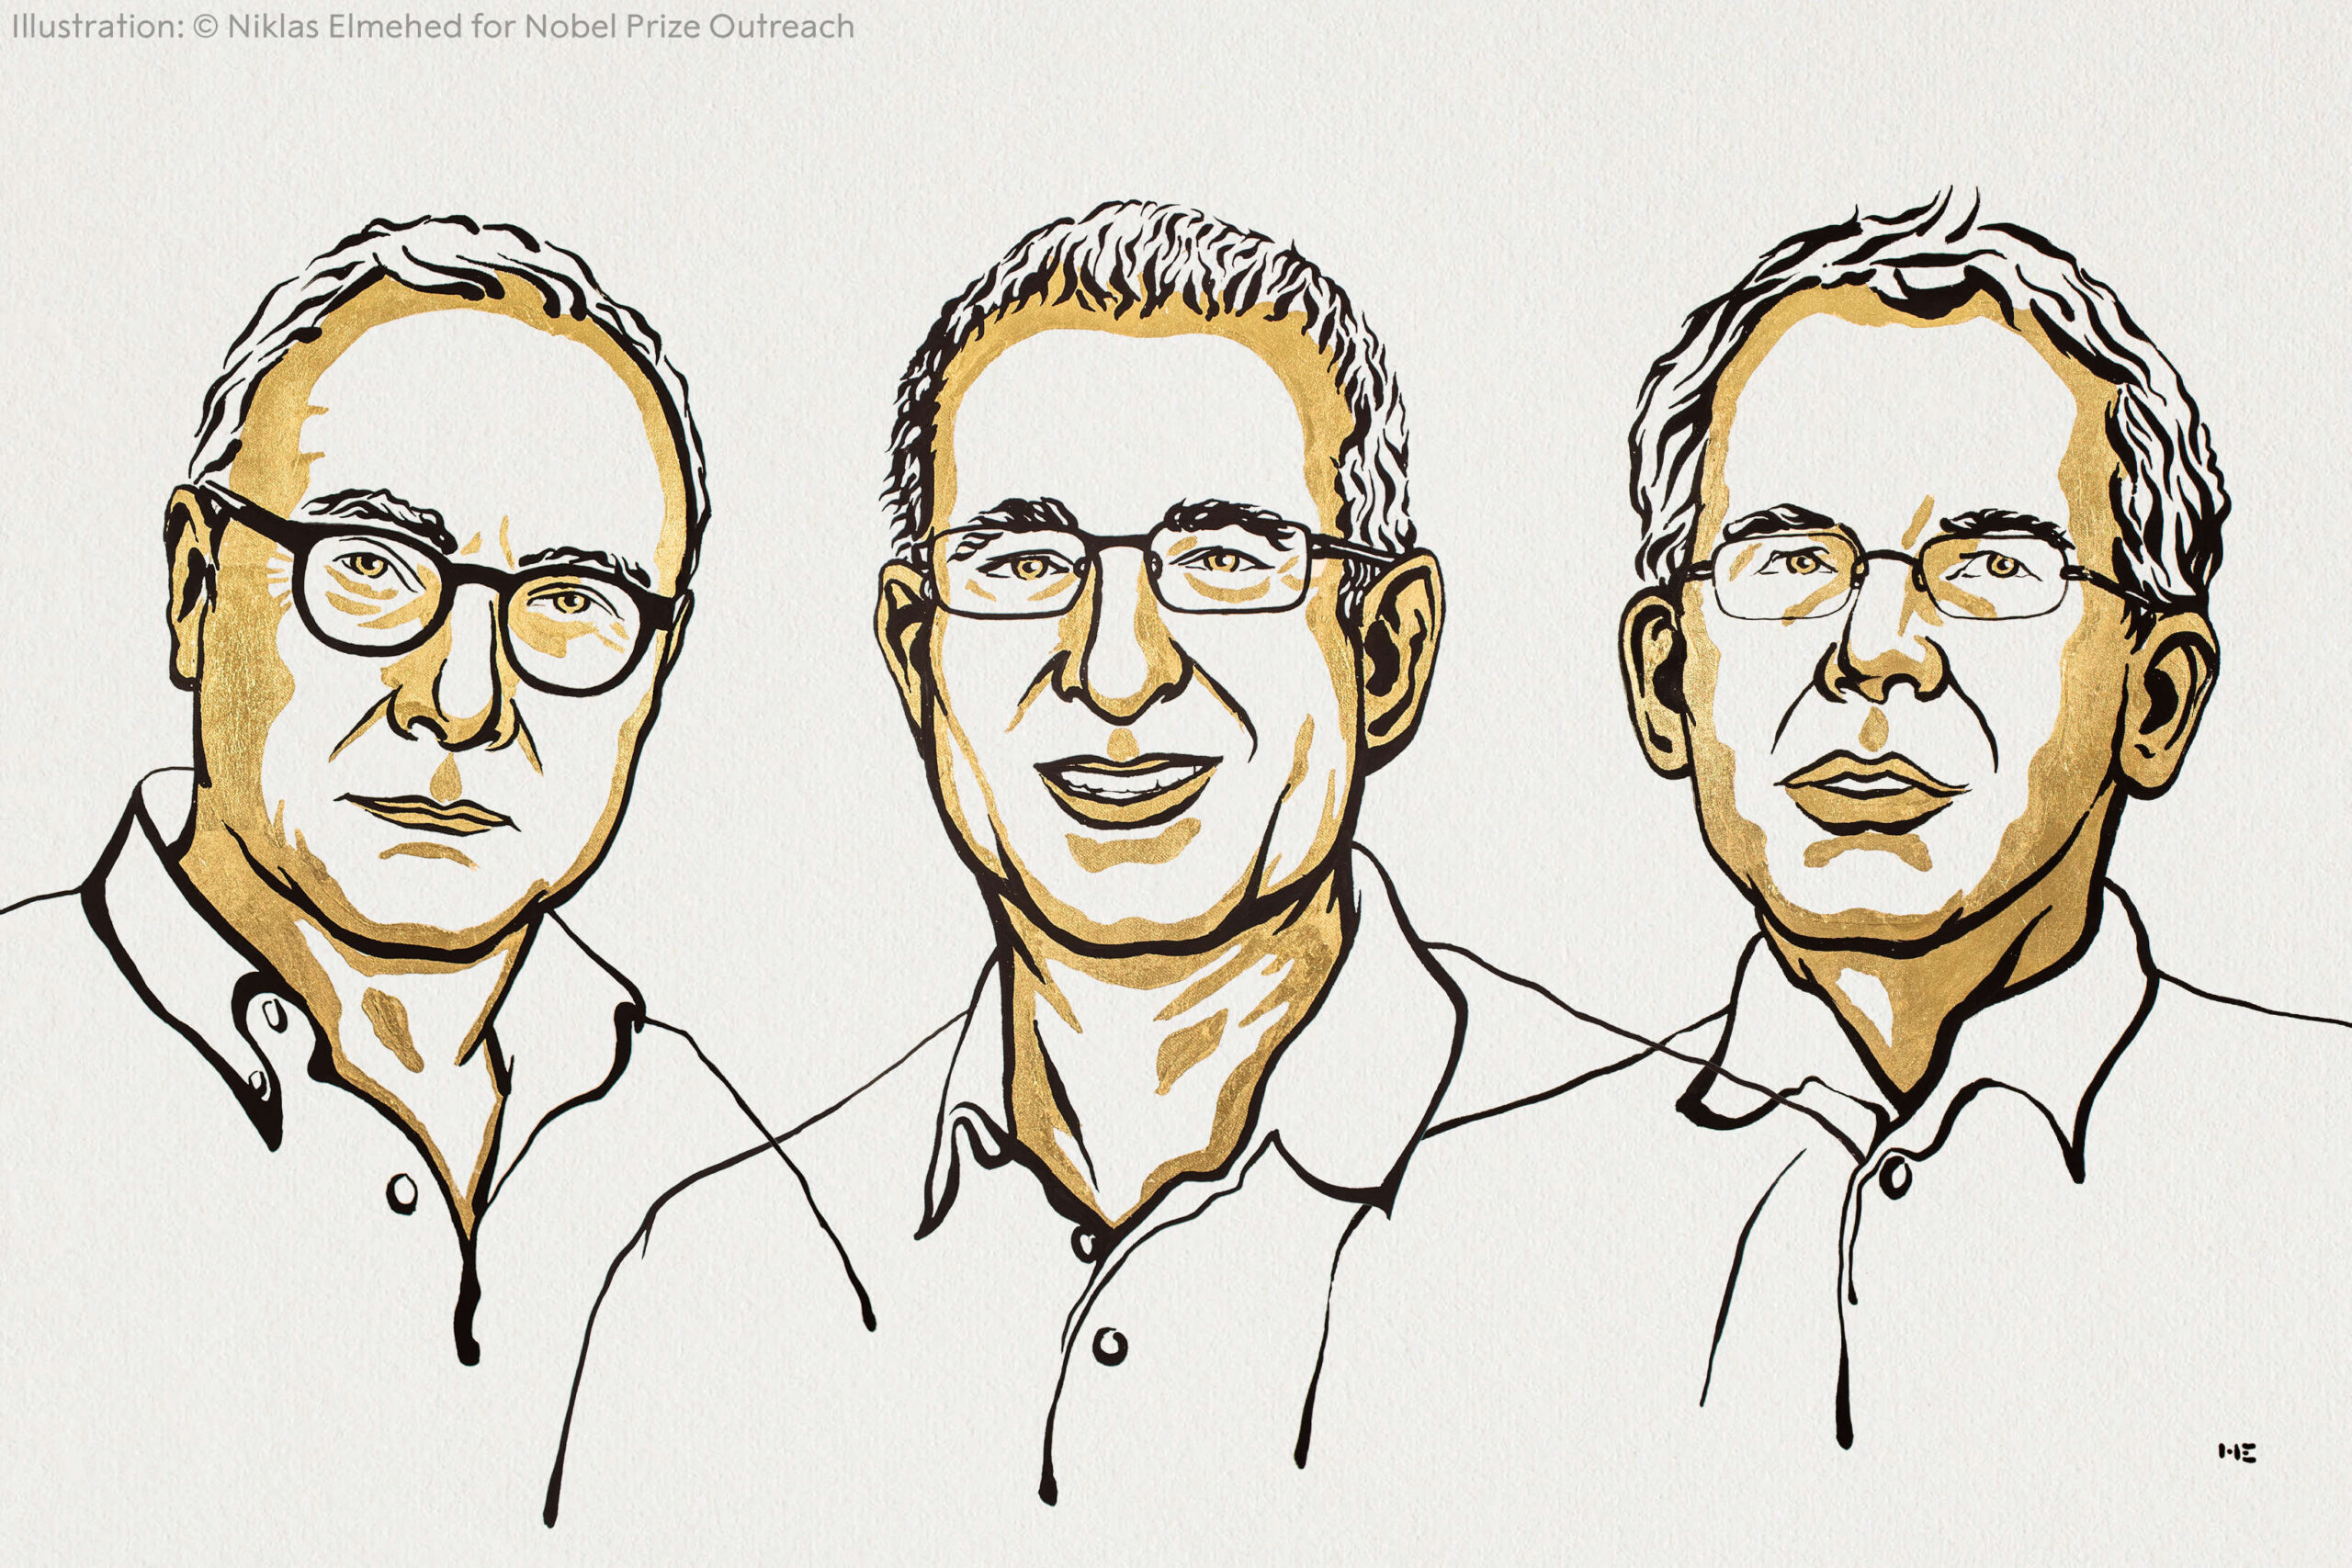 Line drawing of the three winners of the 2021 Nobel Prize in Economics.